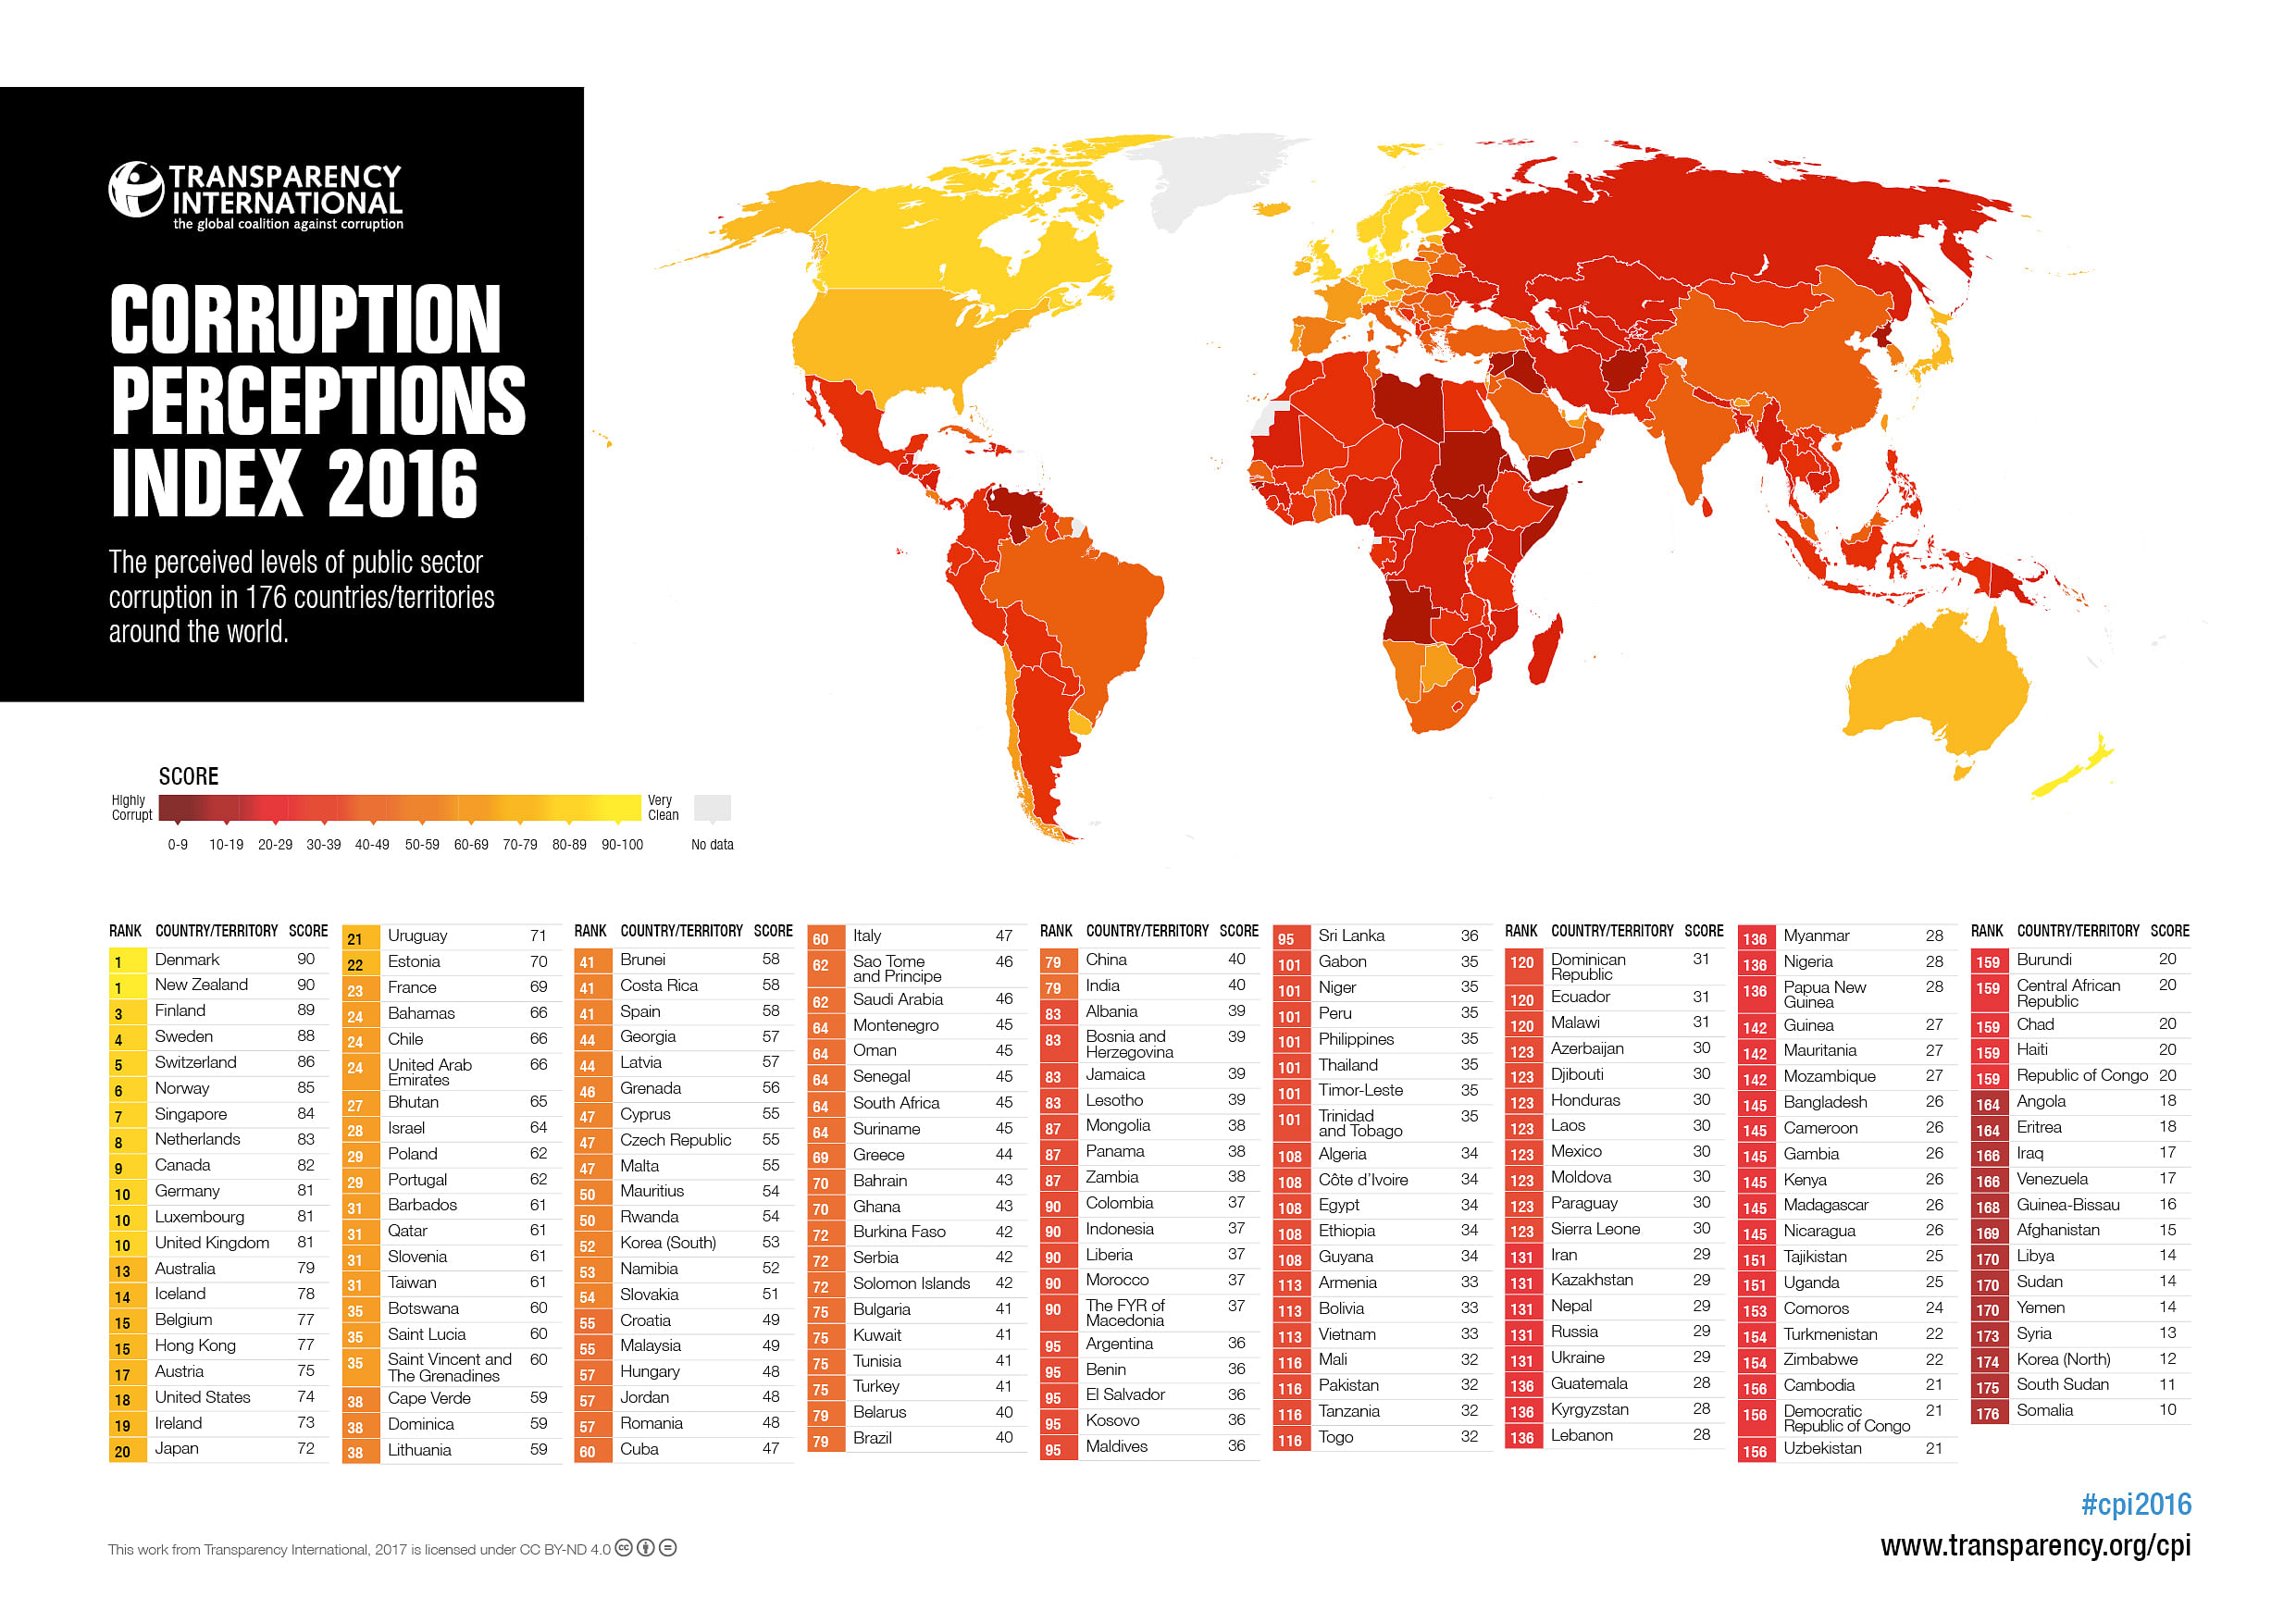 Malaysia drops one spot in latest Corruption Perceptions Index